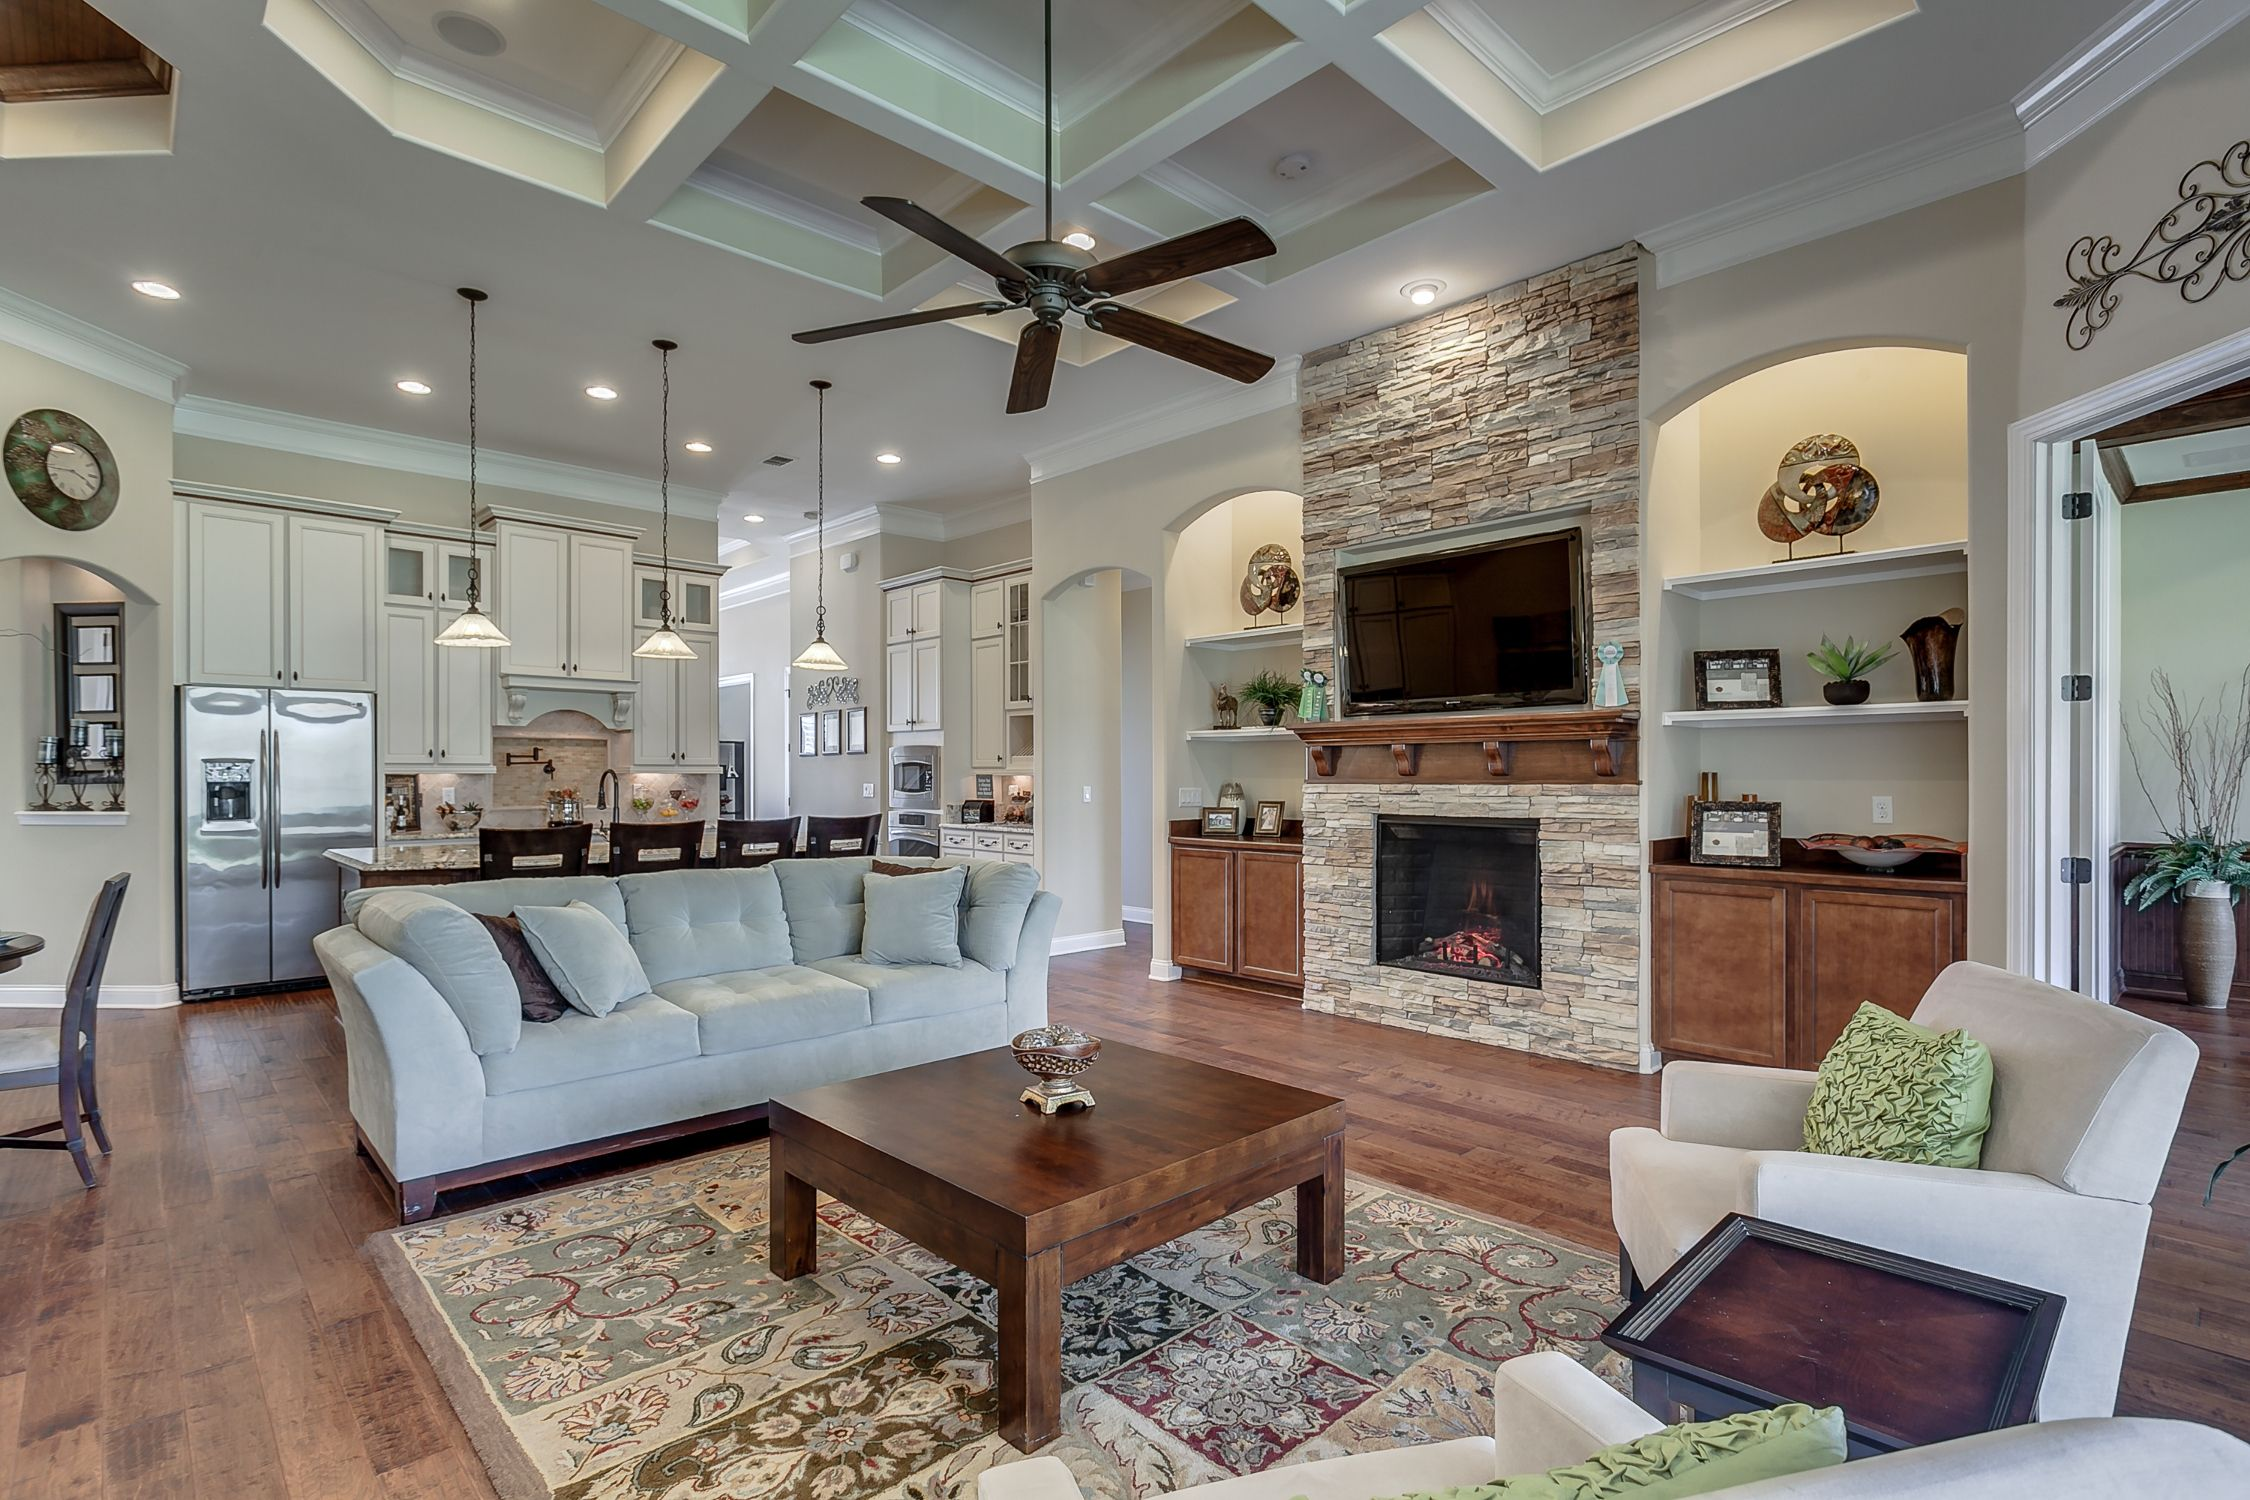 The Valencia Ii Model Living Area Complete With Fireplace By Dream Finders Homes Of Palms At Nocatee